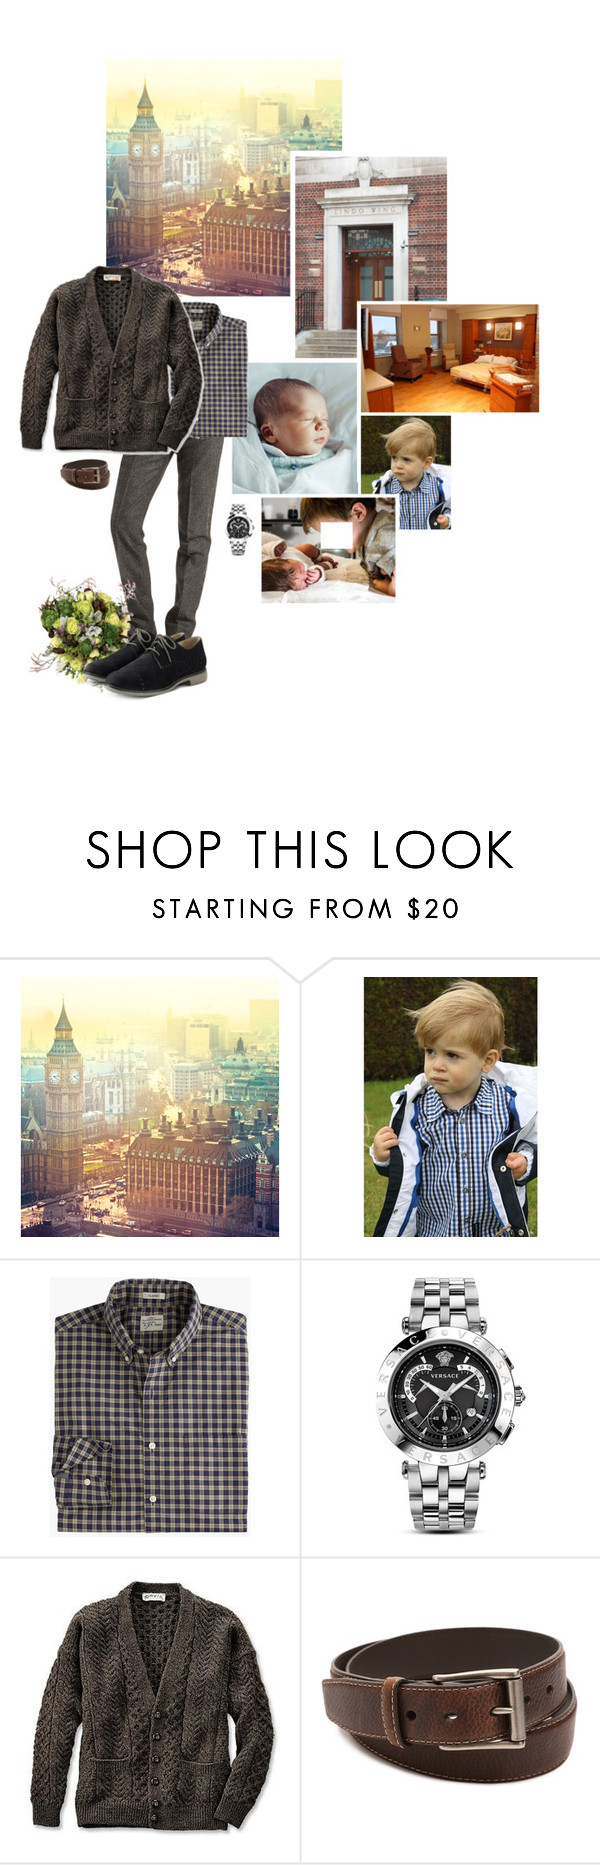 """Untitled #2160"" by duchessq ❤ liked on Polyvore featuring Timberland, Versace, Columbia, Cole Haan, men's fashion and menswear"